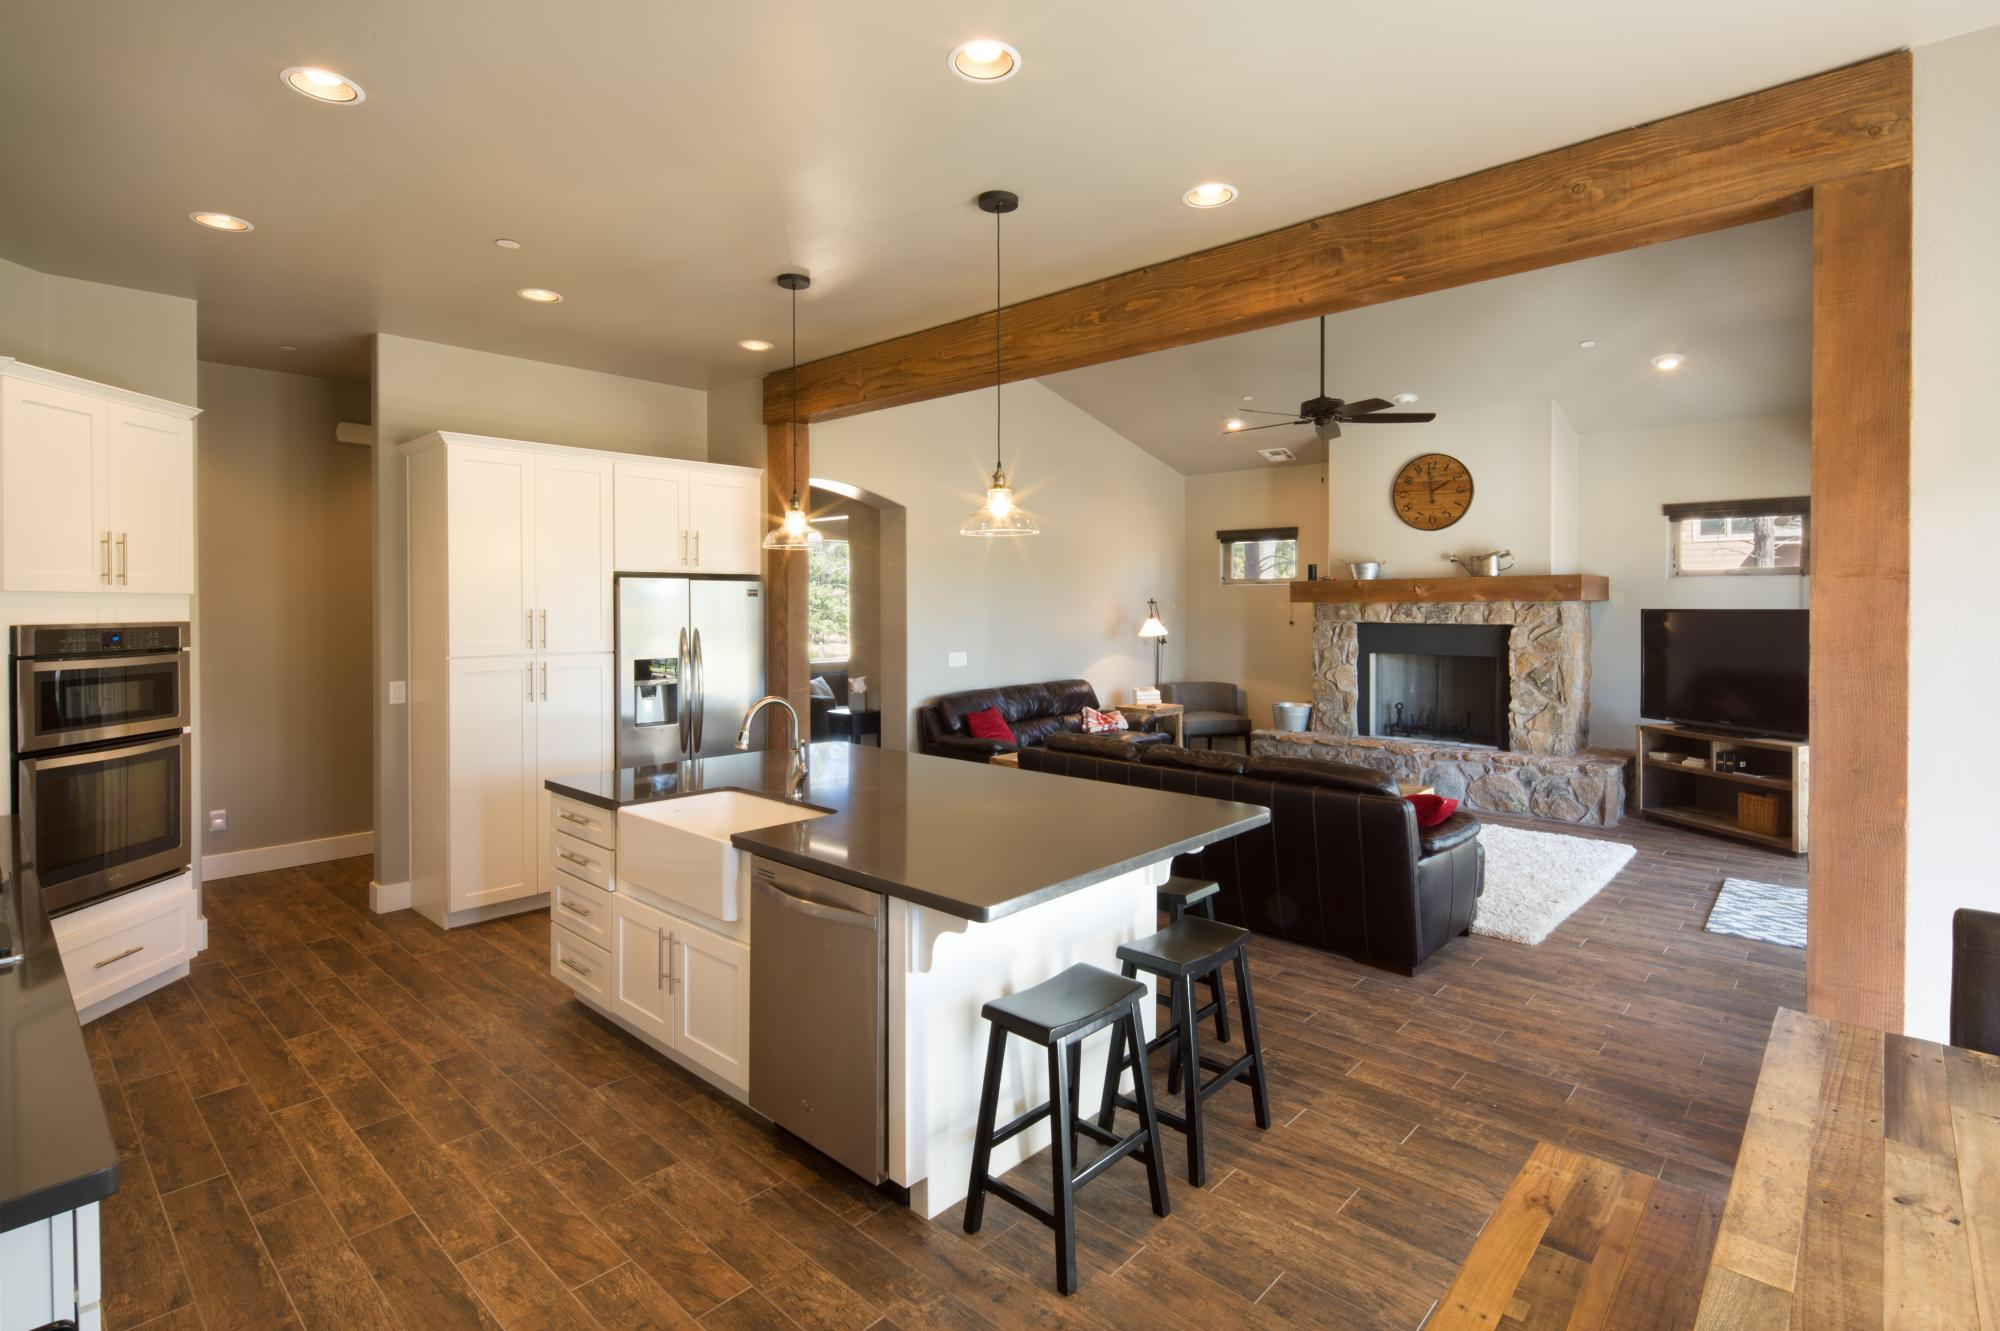 Living Area featured in the Flagstaff Ranch Plan 2308 By Capstone Homes in Flagstaff, AZ